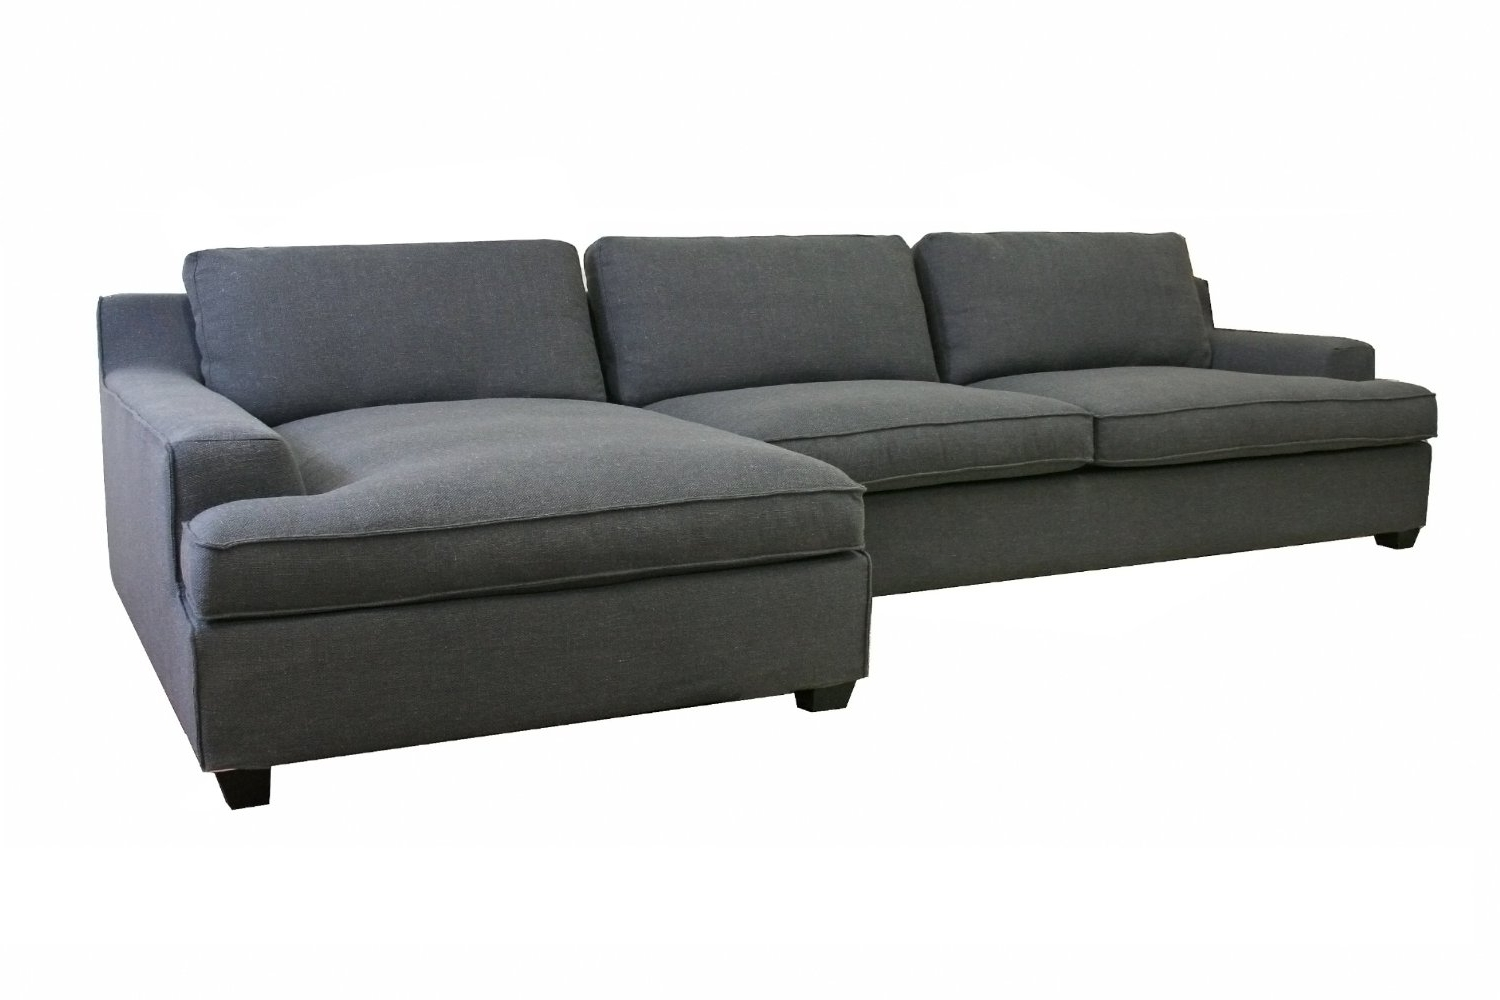 Sectional Sofa Design: Sleeper Sofa With Chaise Best Ever Regarding Newest Sectional Sleeper Sofas With Chaise (View 6 of 15)